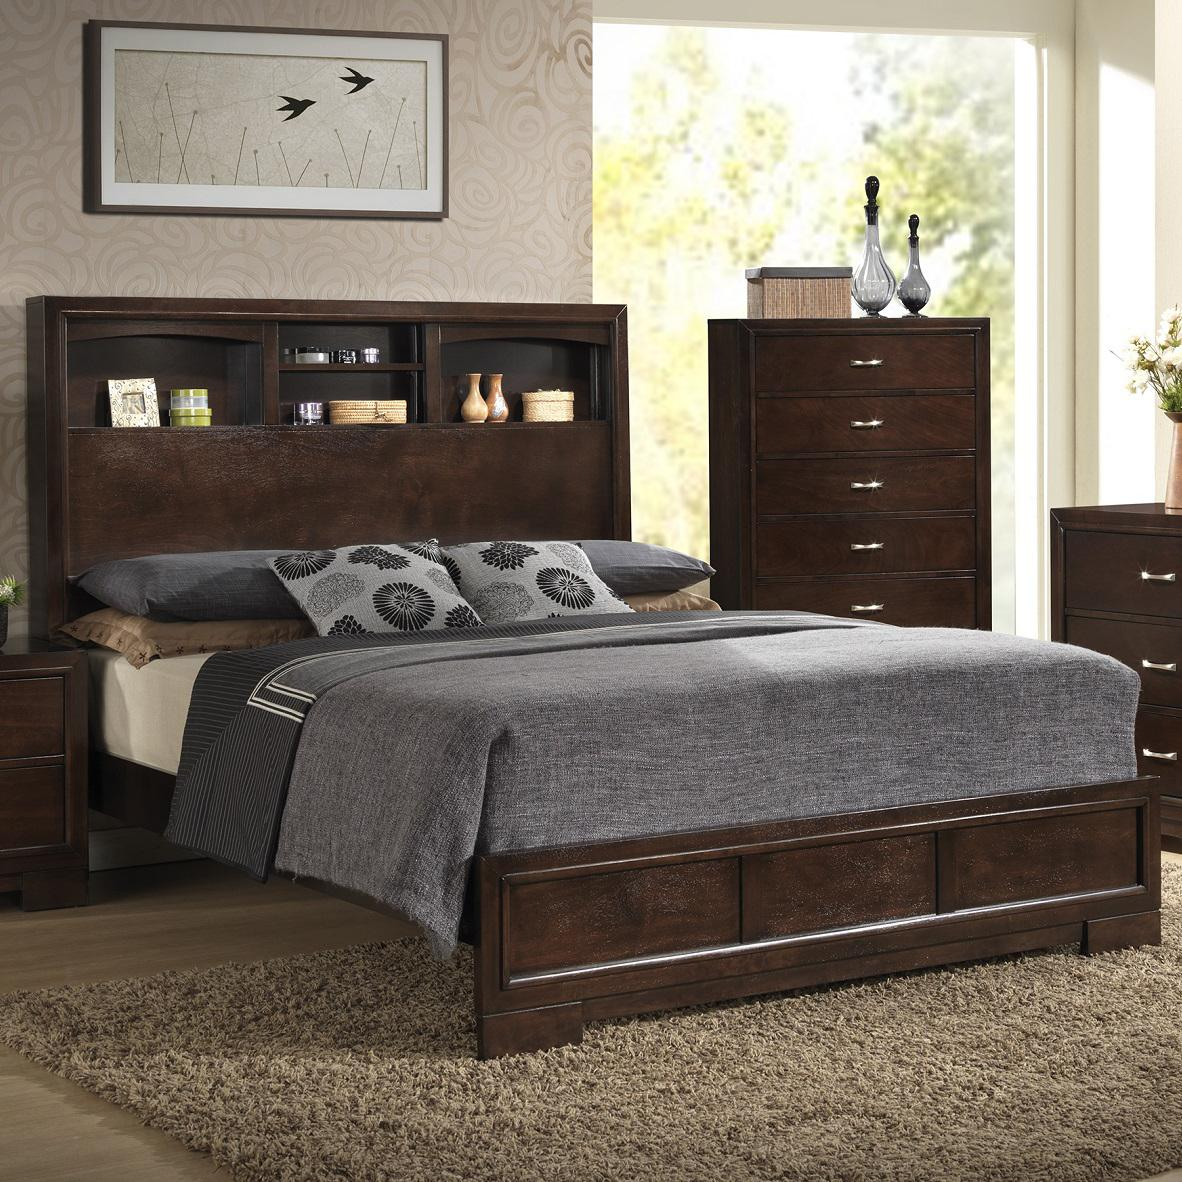 Lifestyle Bookie Contemporary Queen Bookcase Bed With 4 Shelves Royal Furniture Bookcase Bed